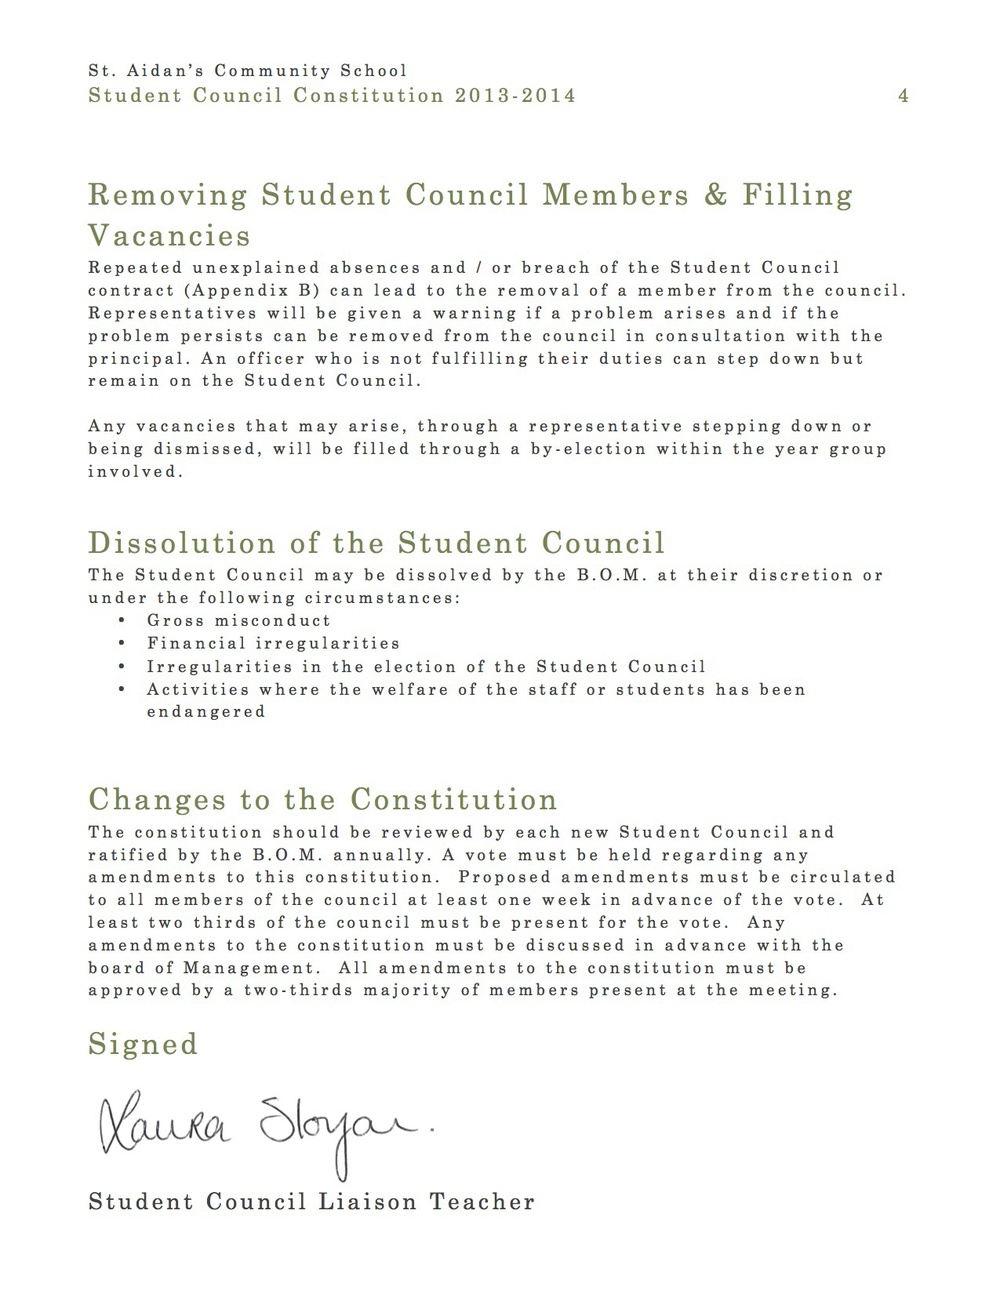 Student Council Constitution PDF4.jpg